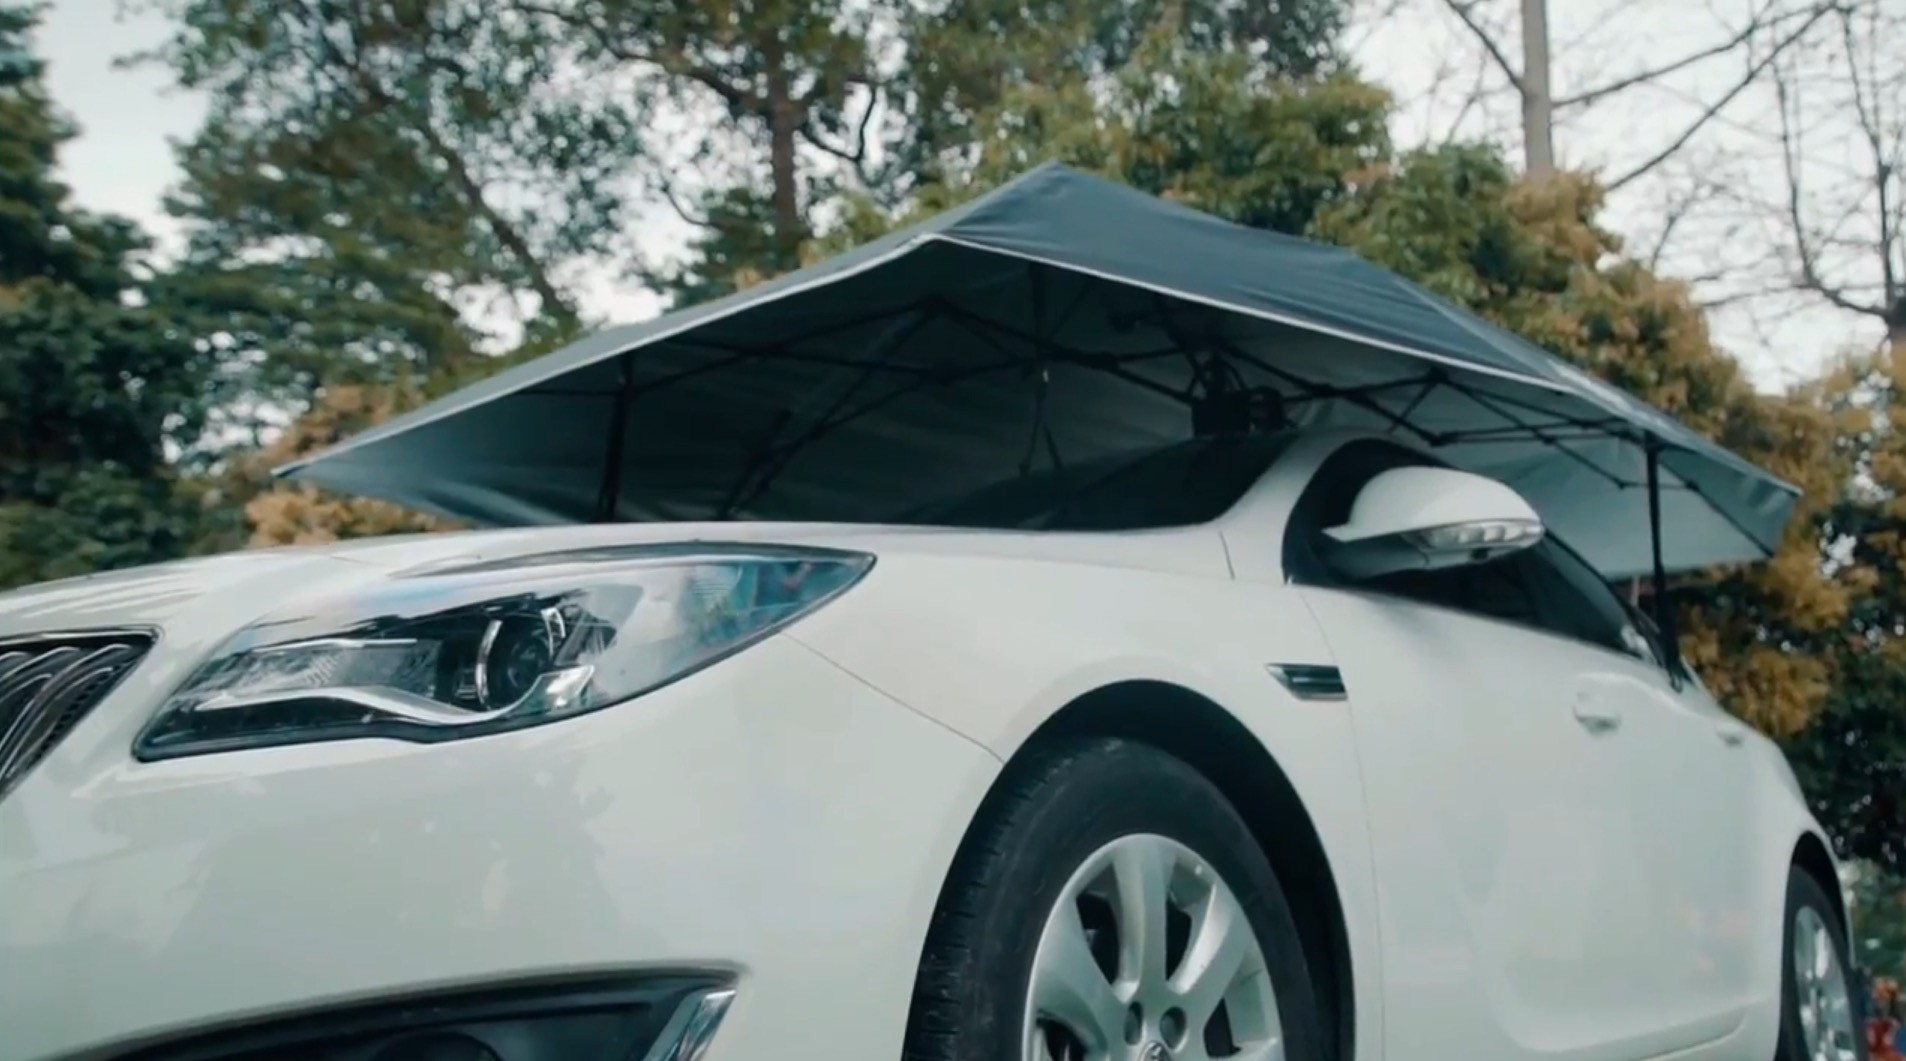 ... an automatic multi-purpose car tent ... & Kickstarter Project Unveils Automatic Car Tent It Costs $292 ...